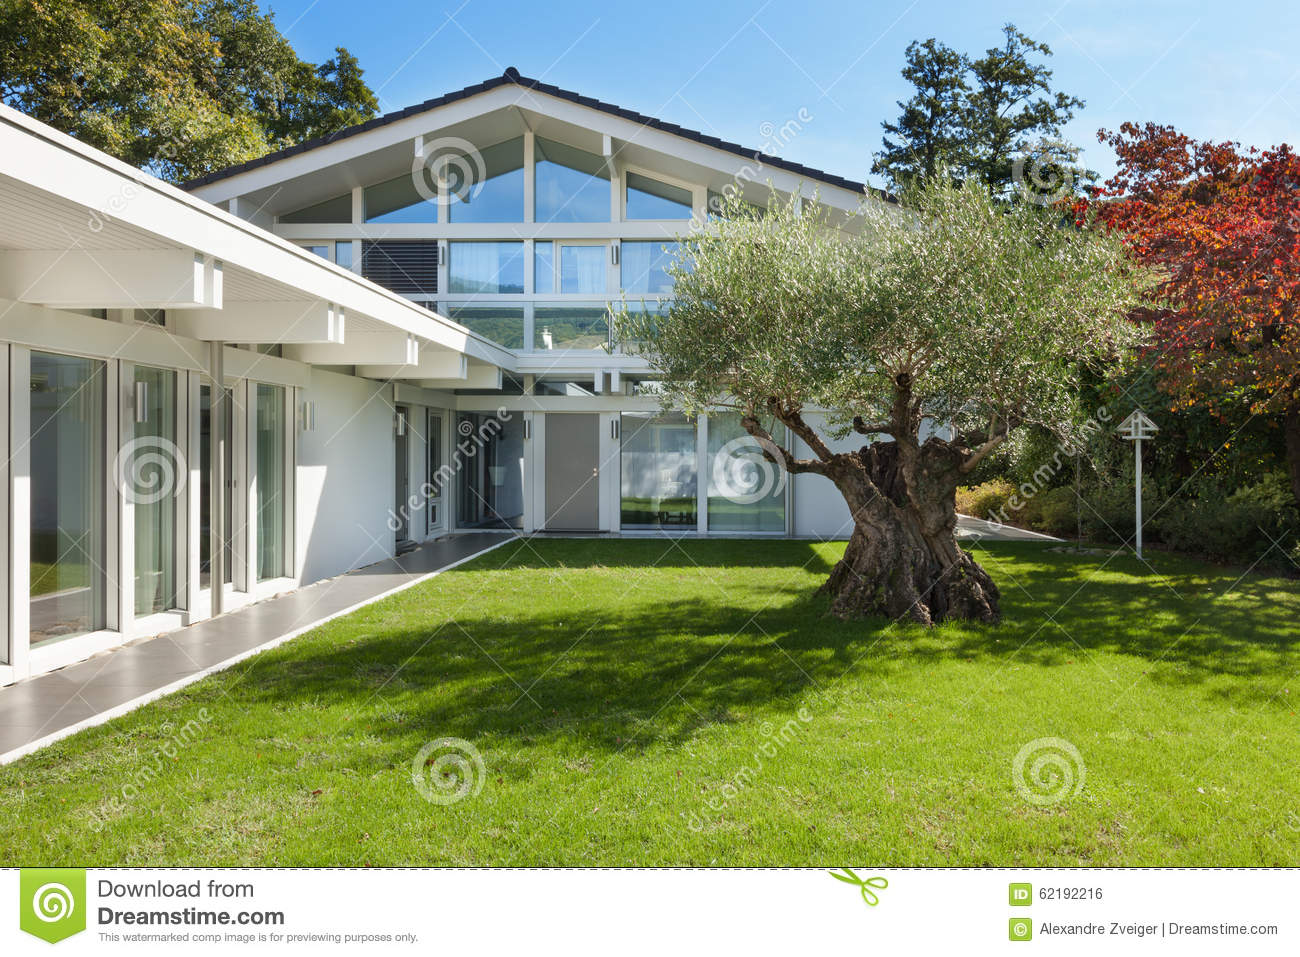 Jardin d 39 une maison moderne avec l 39 olivier photo stock for Jardin moderne photo